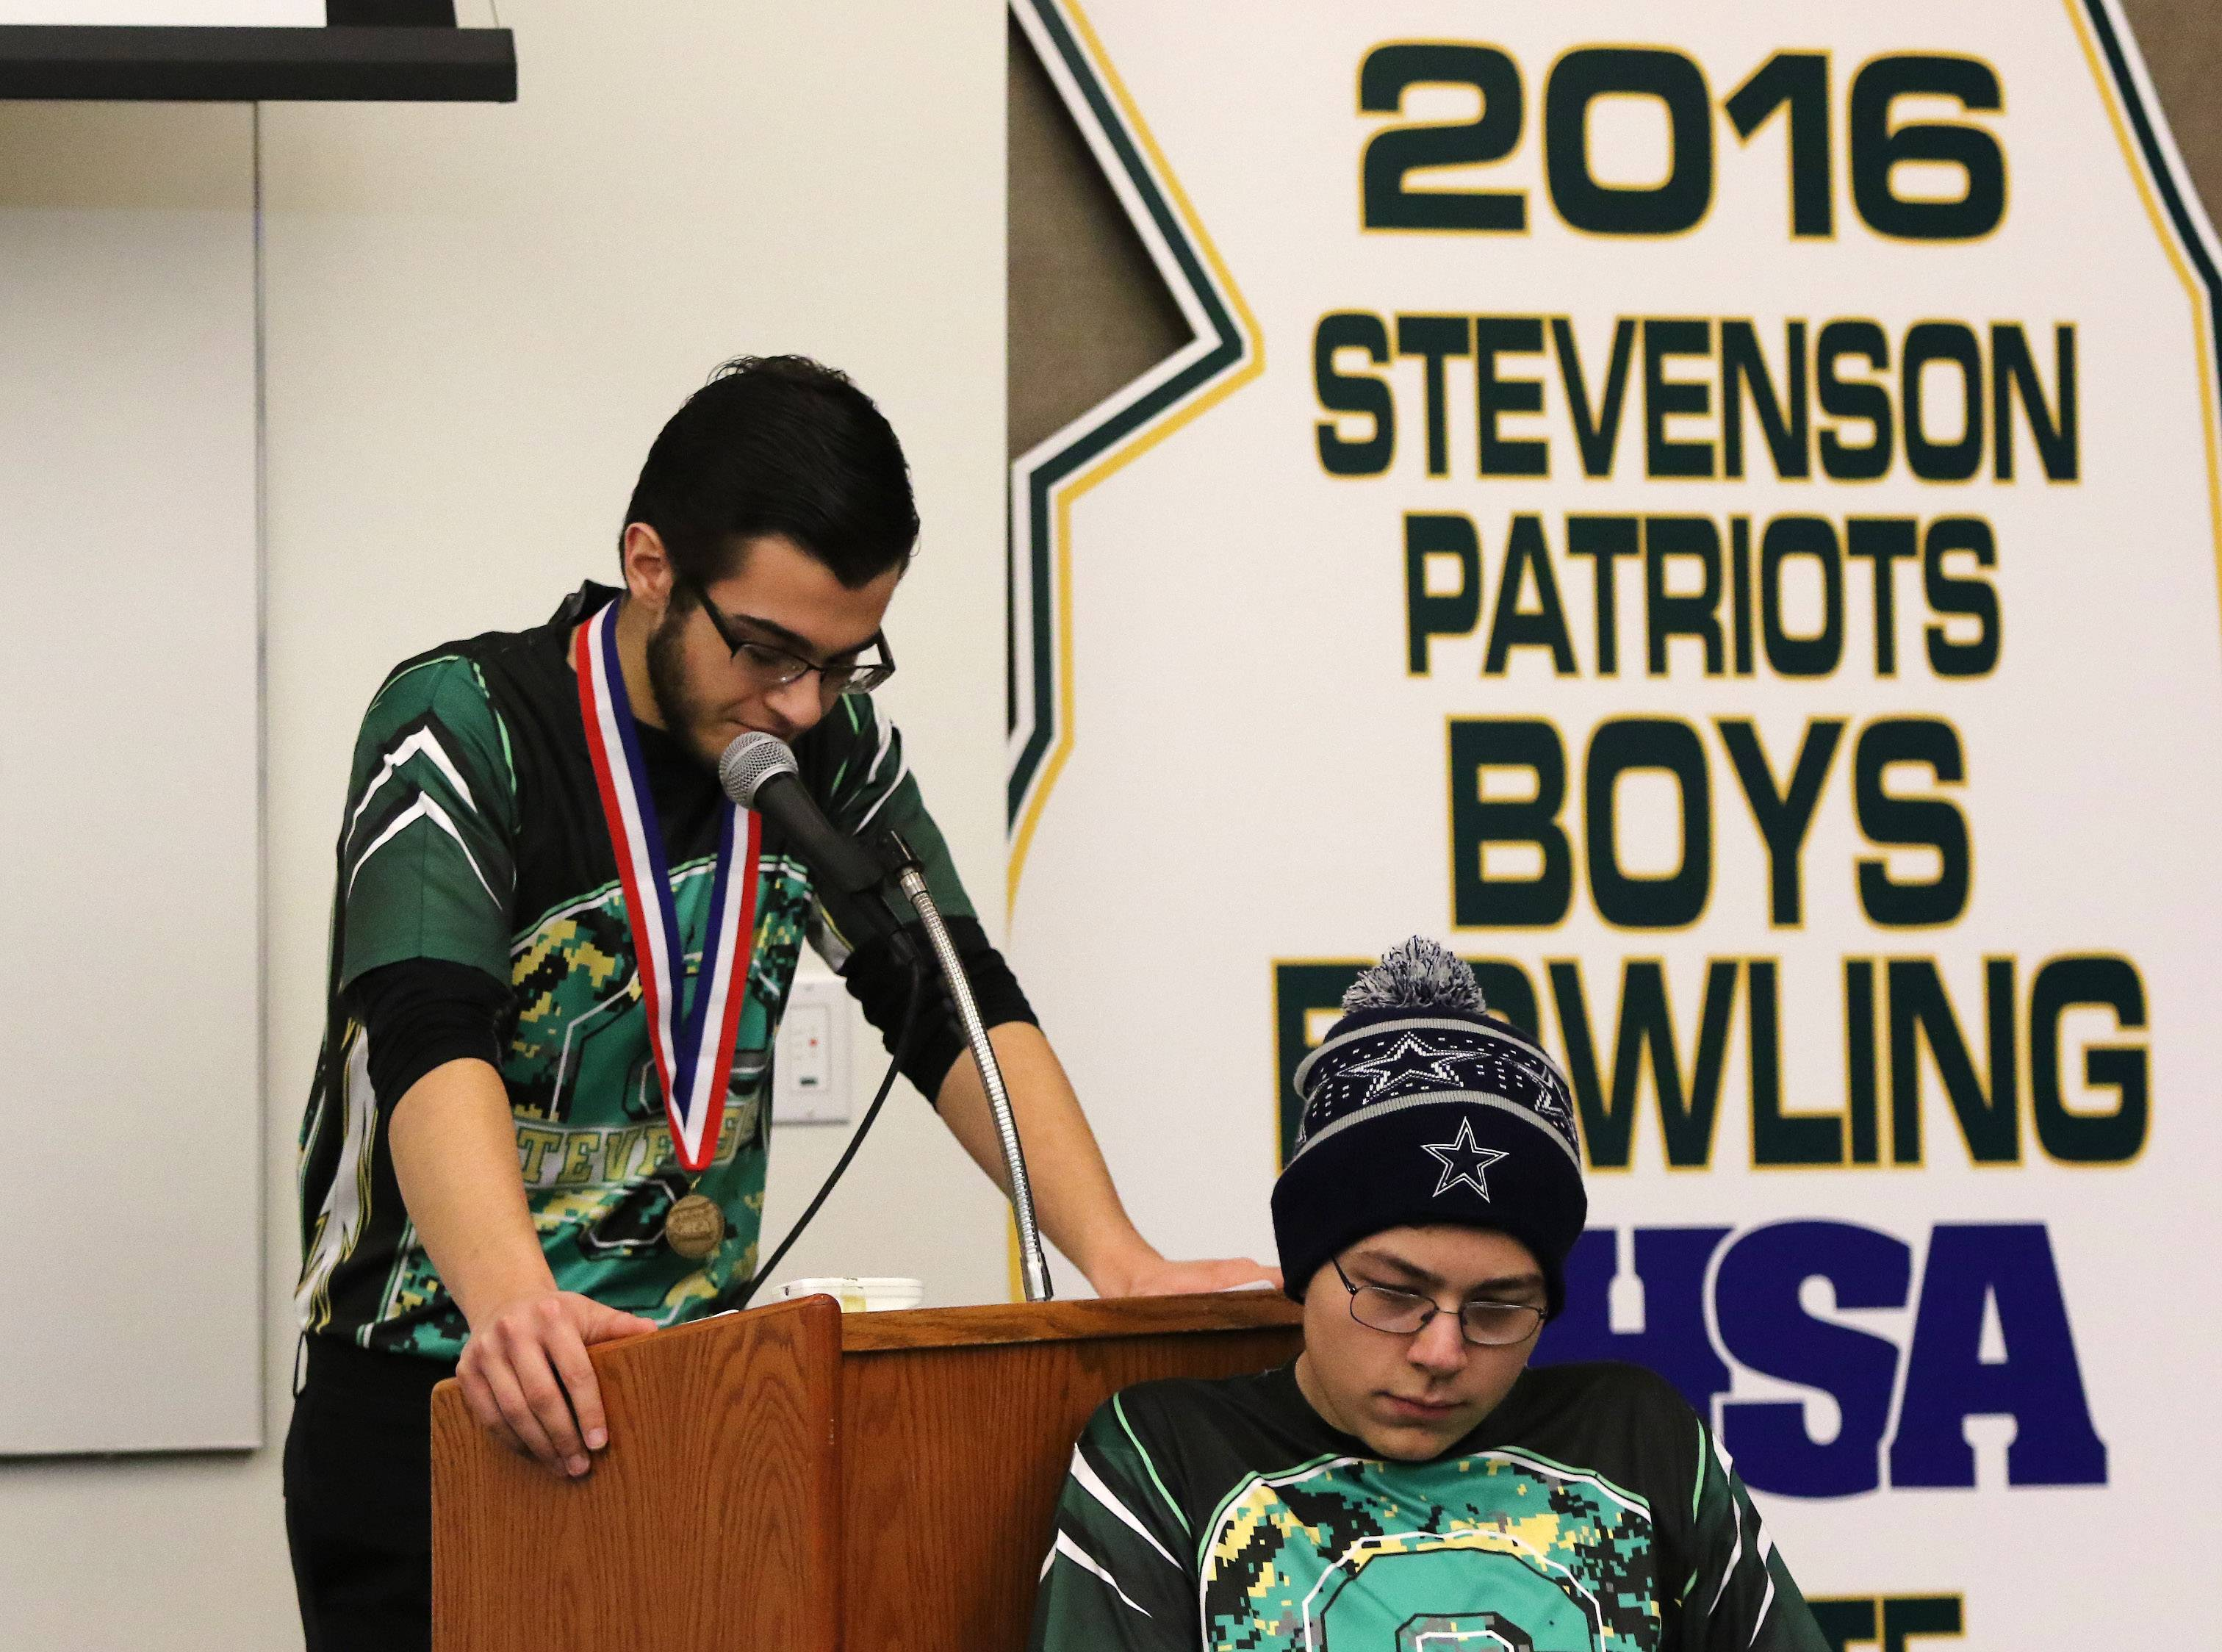 Stevenson High School bowling team captain Theodore Tapas talks about winning the state championship Monday during a celebration at the Lincolnshire school. The team set state records in points, and Zach Singer came in first and Richy Zenner finished second in individual bowling, which was a first for the state championship tournament.